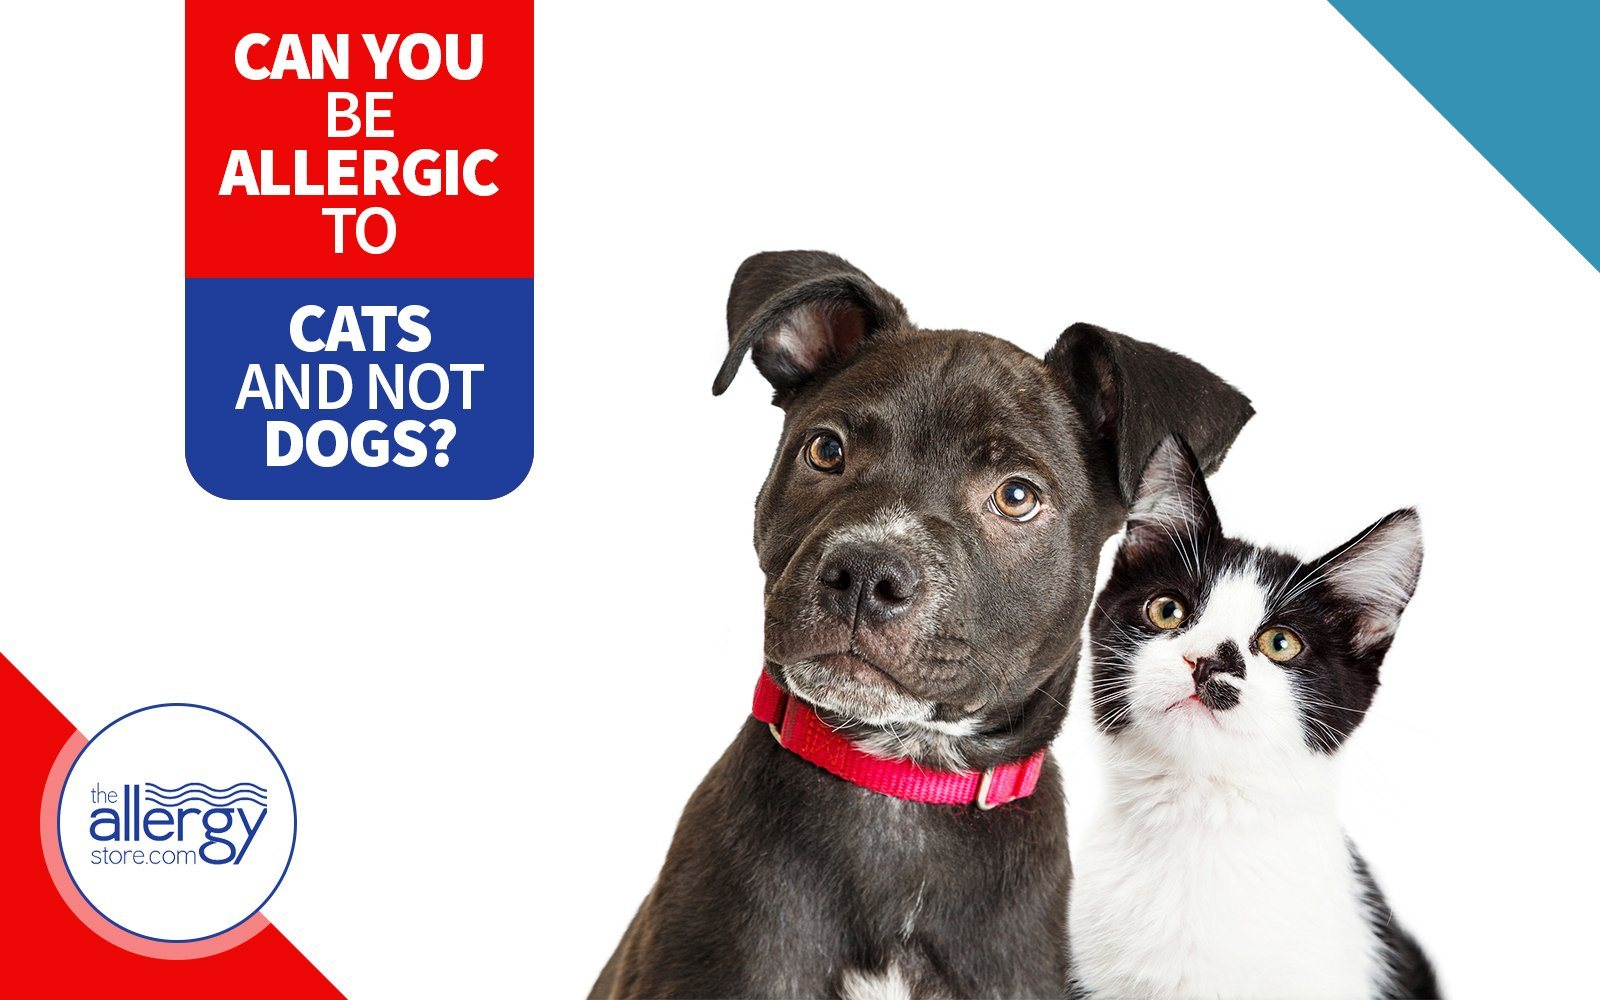 Can You Be Allergic to Cats and Not Dogs?